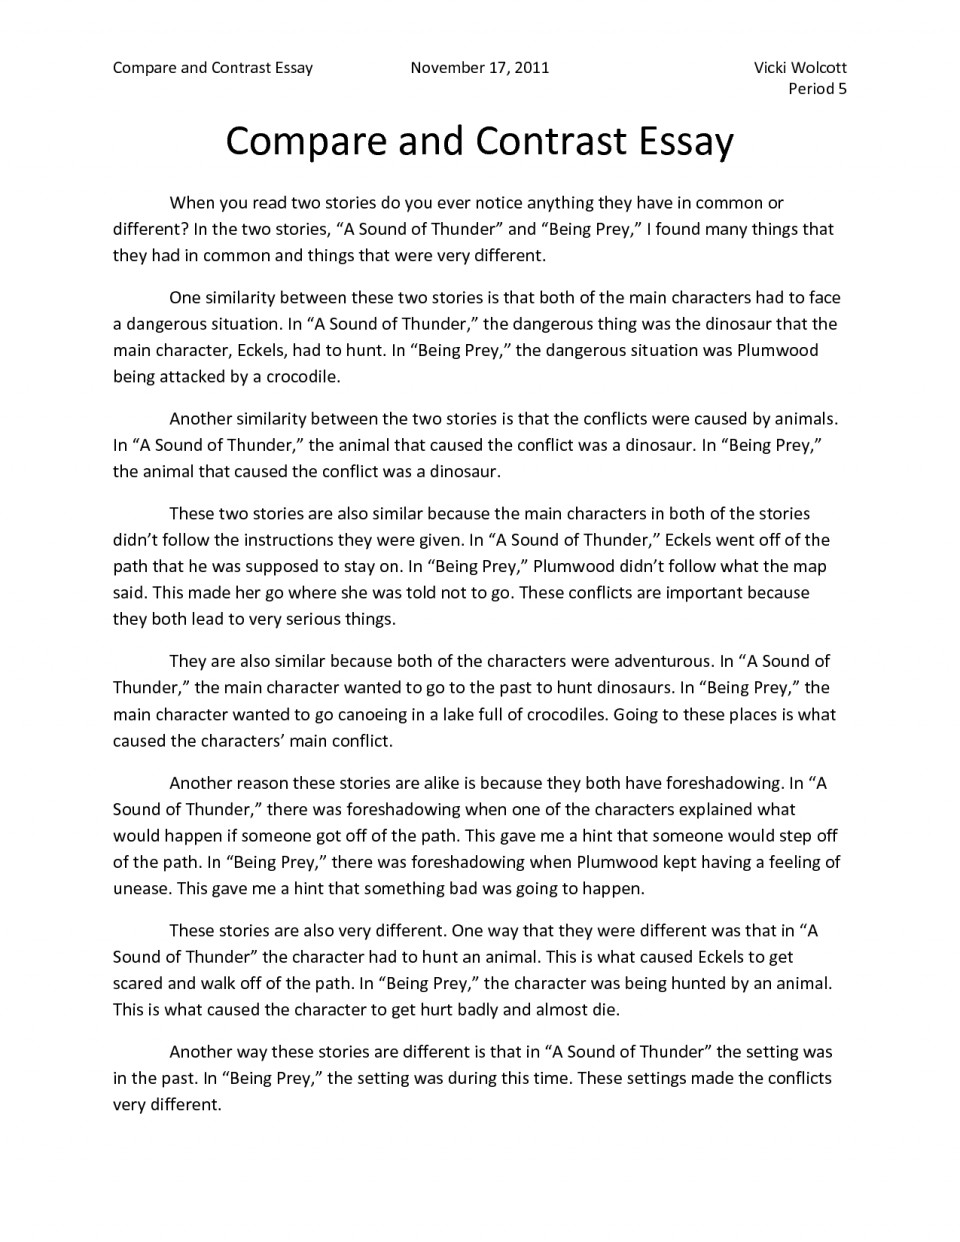 003 Perfect Essays Compare And Contrast Essay Introduction Example How To Write College Striking Comparison Examples Free Pdf 4th Grade For 5th 960